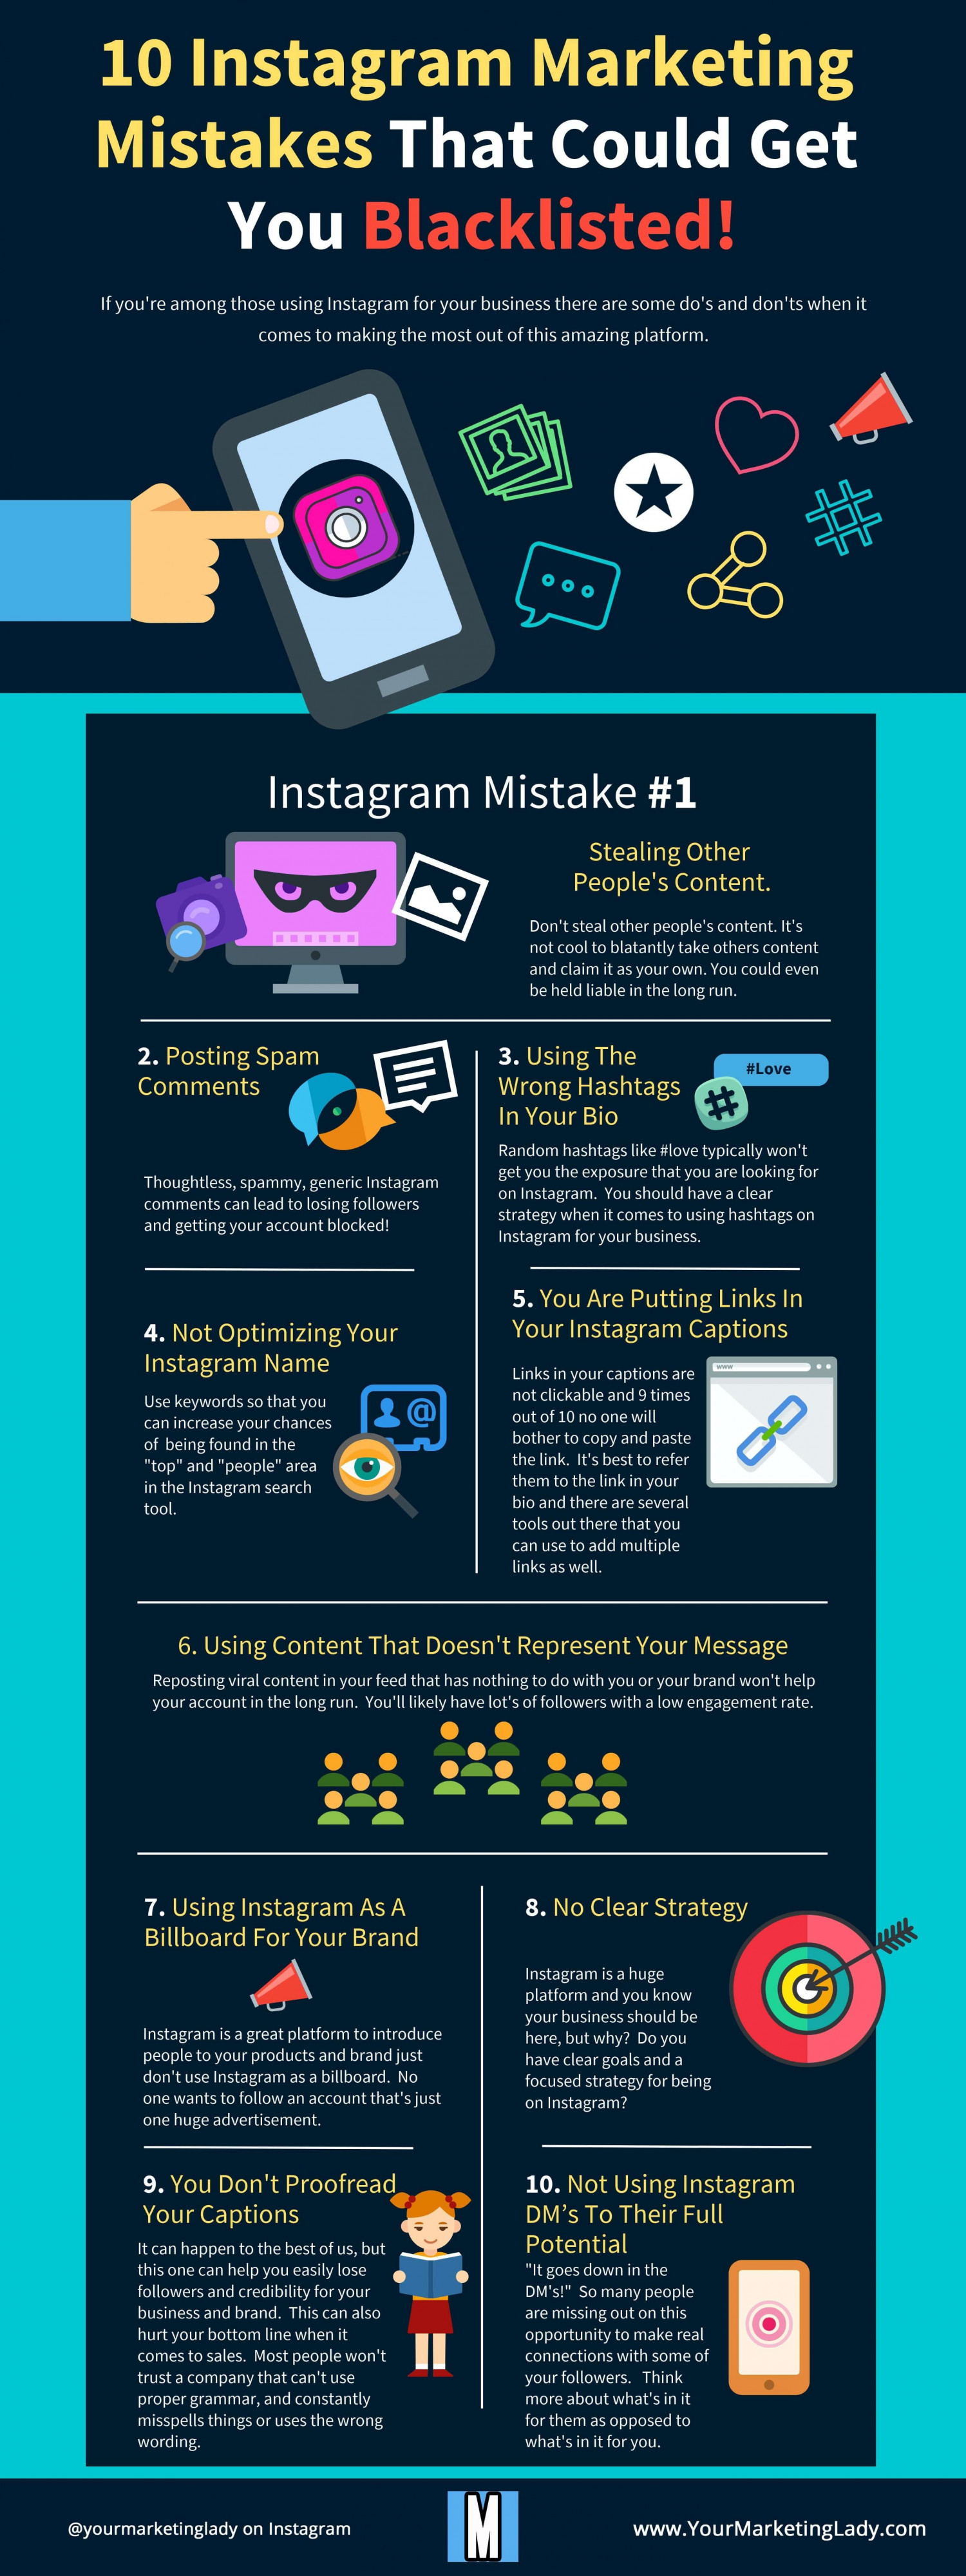 10 Instagram Marketing Mistakes That Could Get You Blacklisted! Infographic